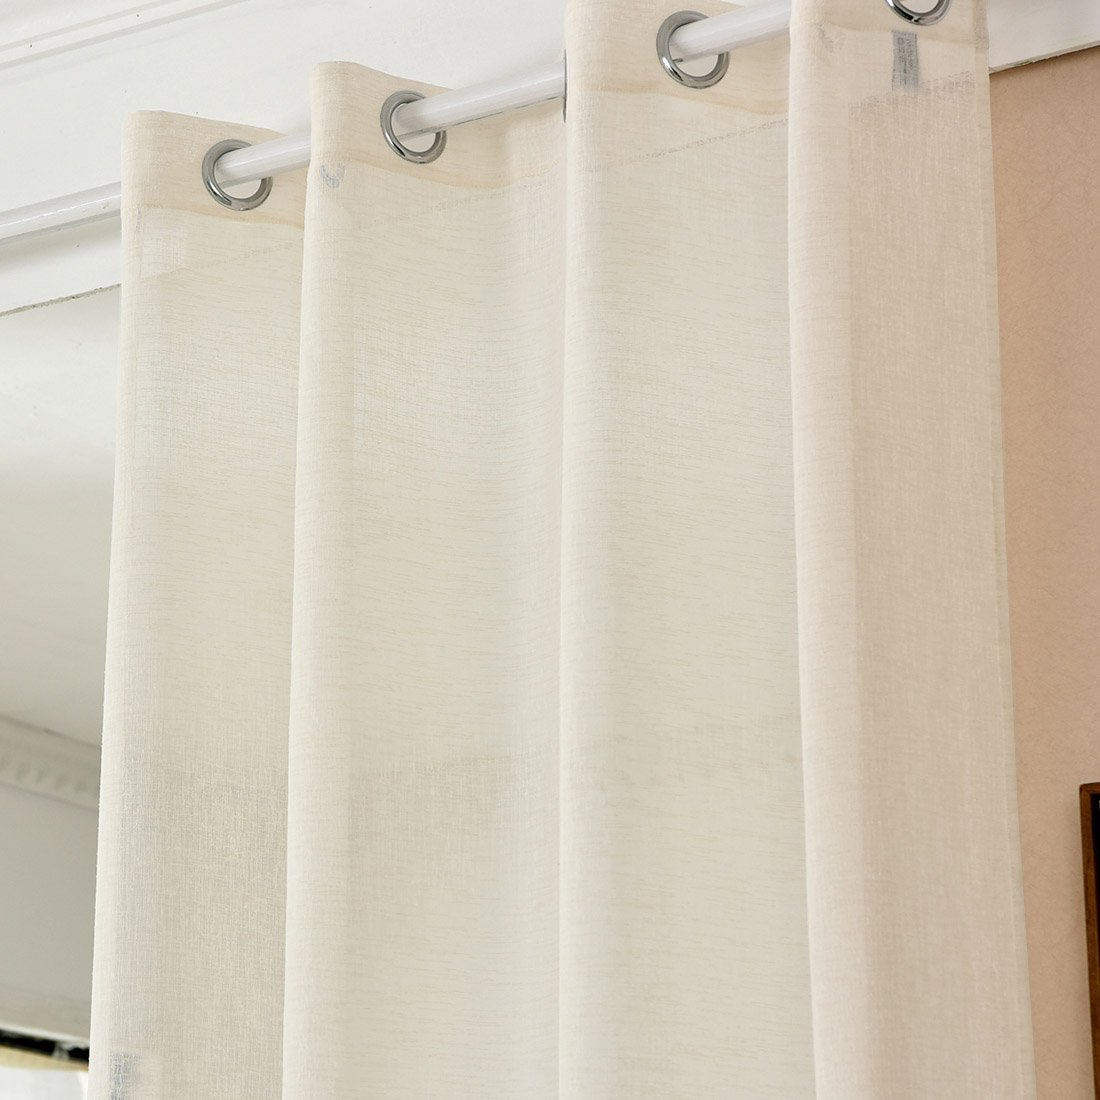 Curtain With Eyelets In Linen Look Transparent Woltu Eu